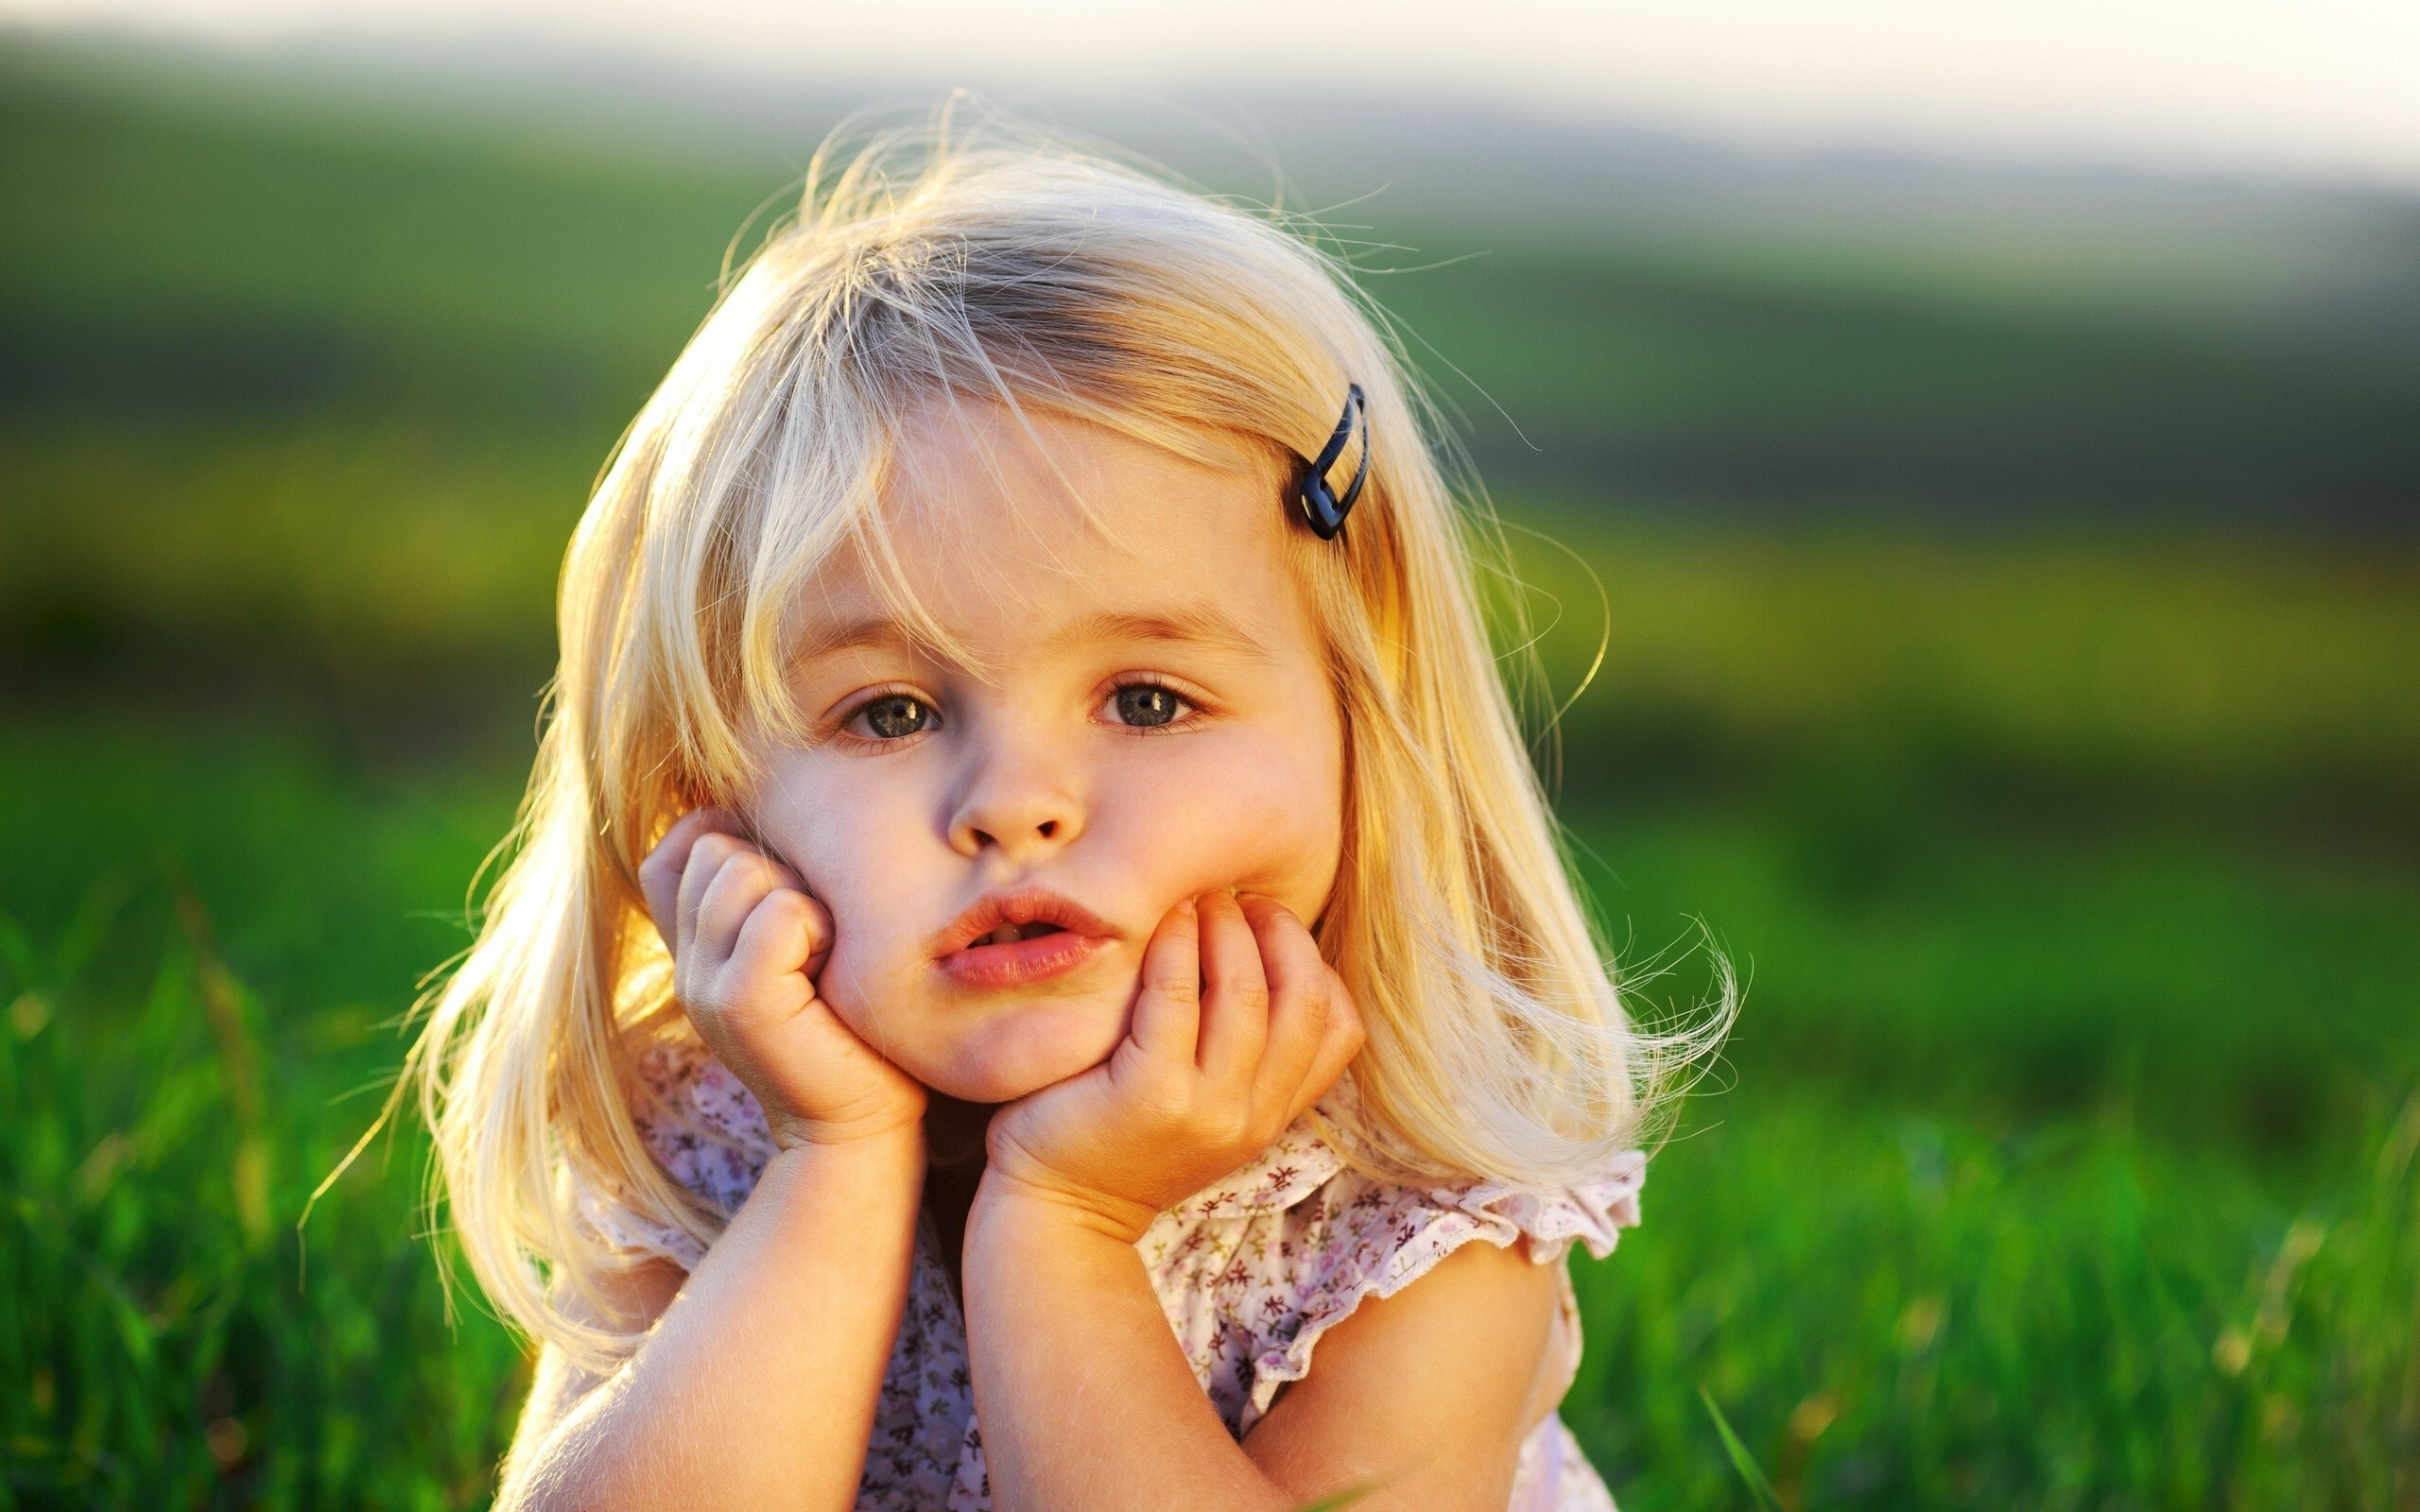 Download Free Small Cute Babies Wallpapers The Quotes Land: Cute Baby Girl HD Wallpaper